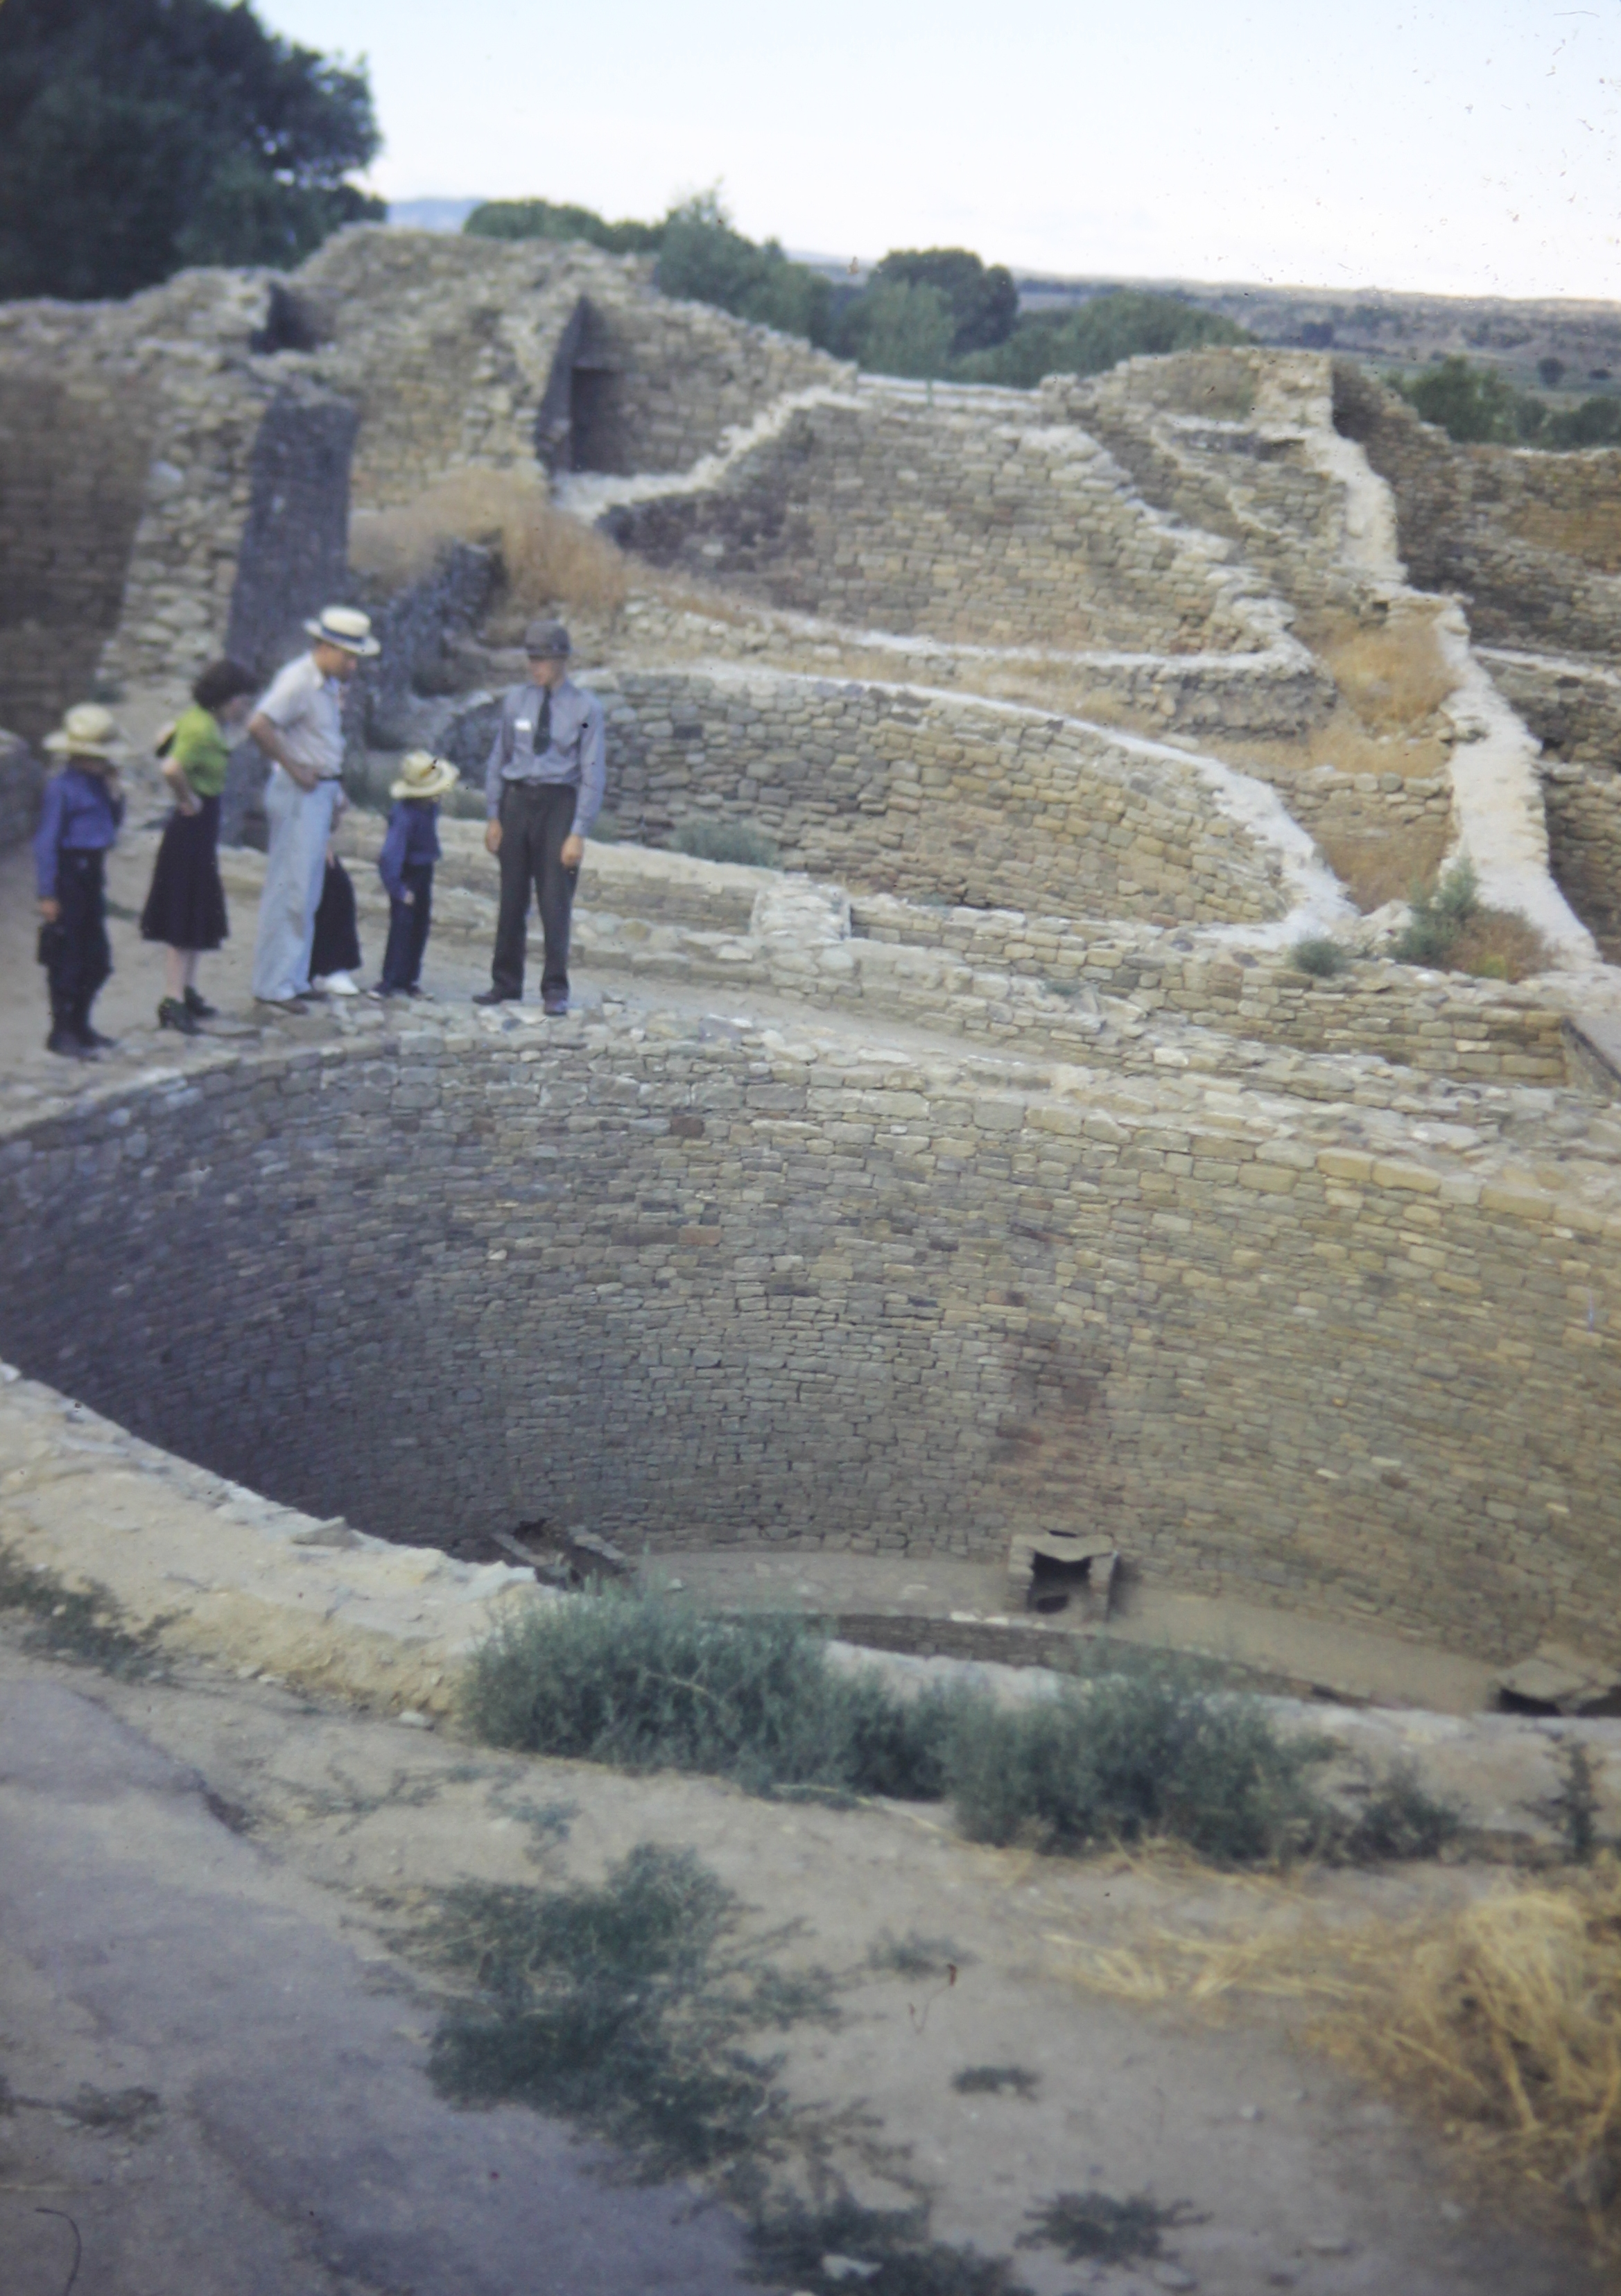 Adelaide and Ripley Bullen and their sons, visiting Aztec ruins in New Mexico, 1941